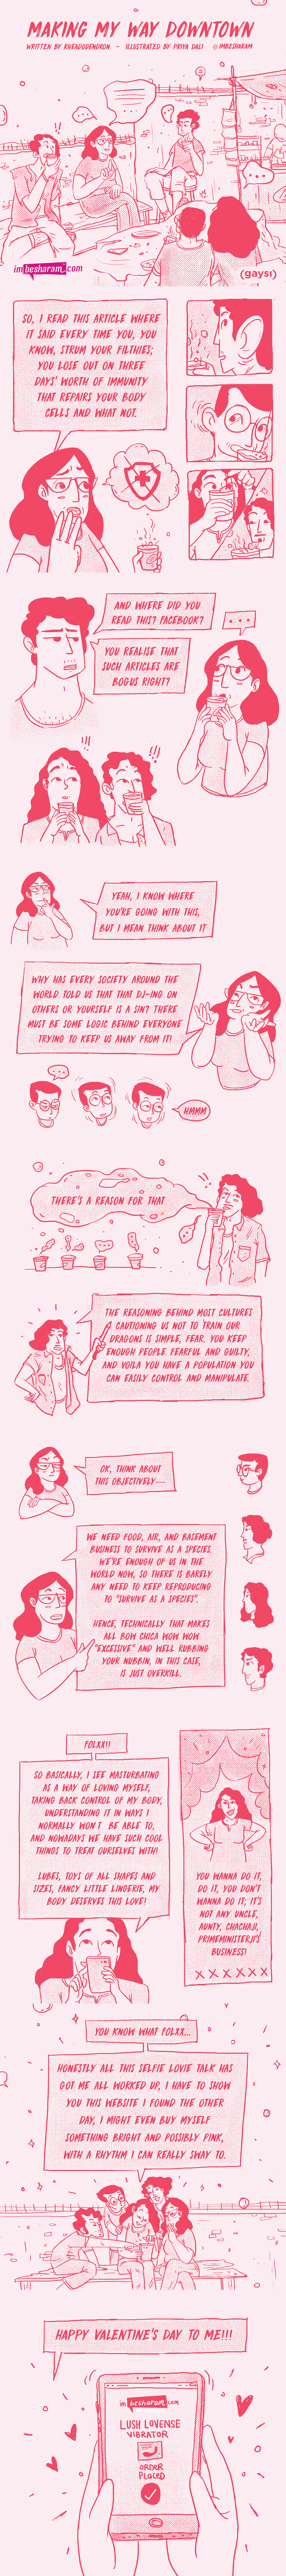 Graphic Story: Making My Way Downtown